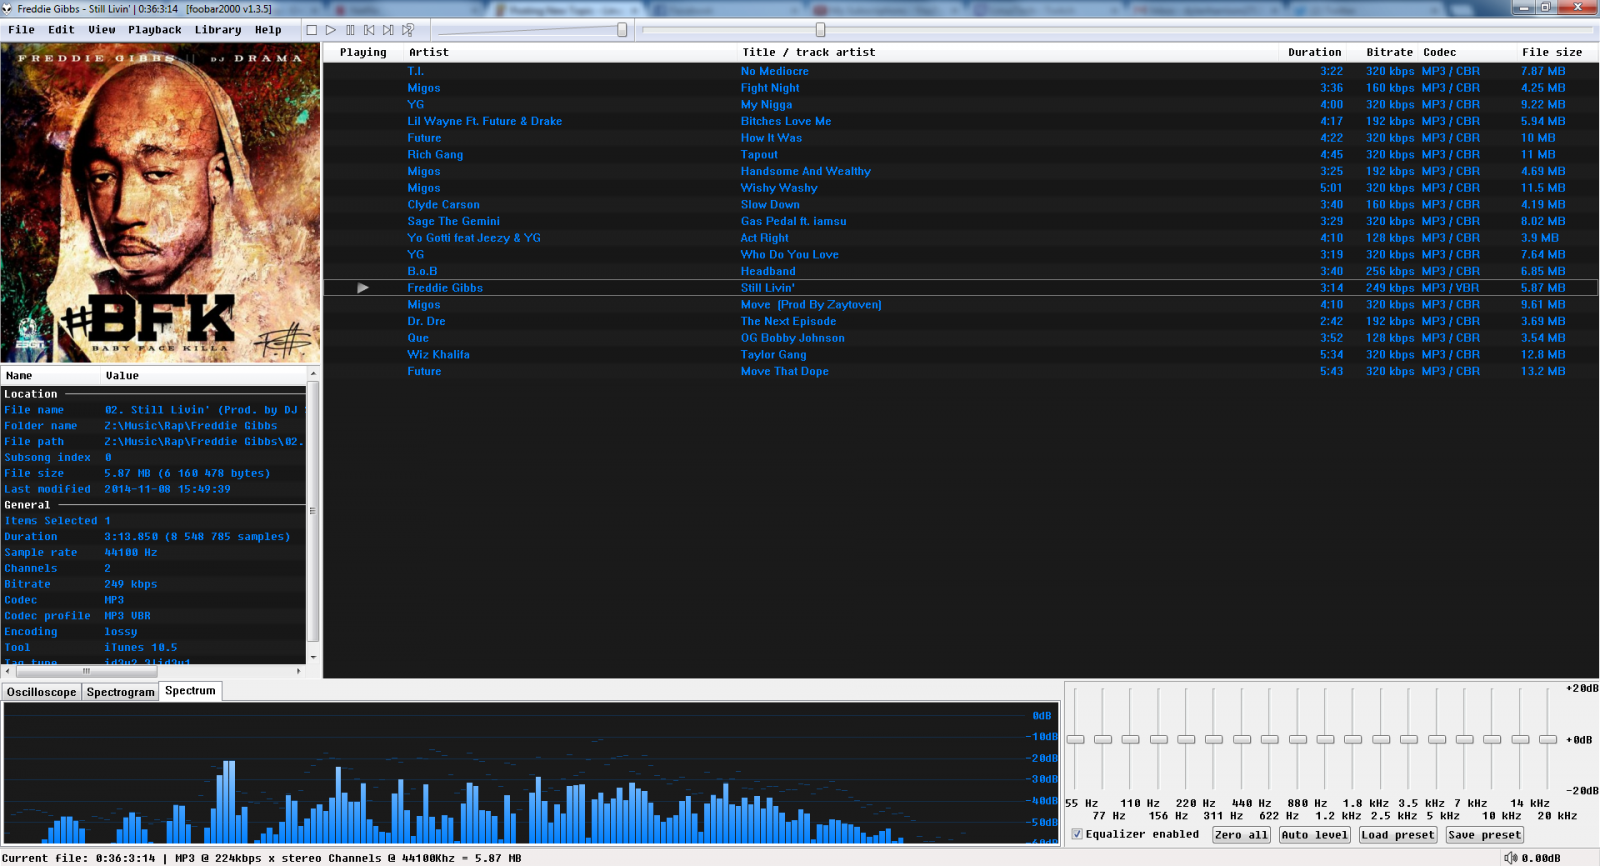 Foobar 2000 Theme for download - Off Topic - Linus Tech Tips